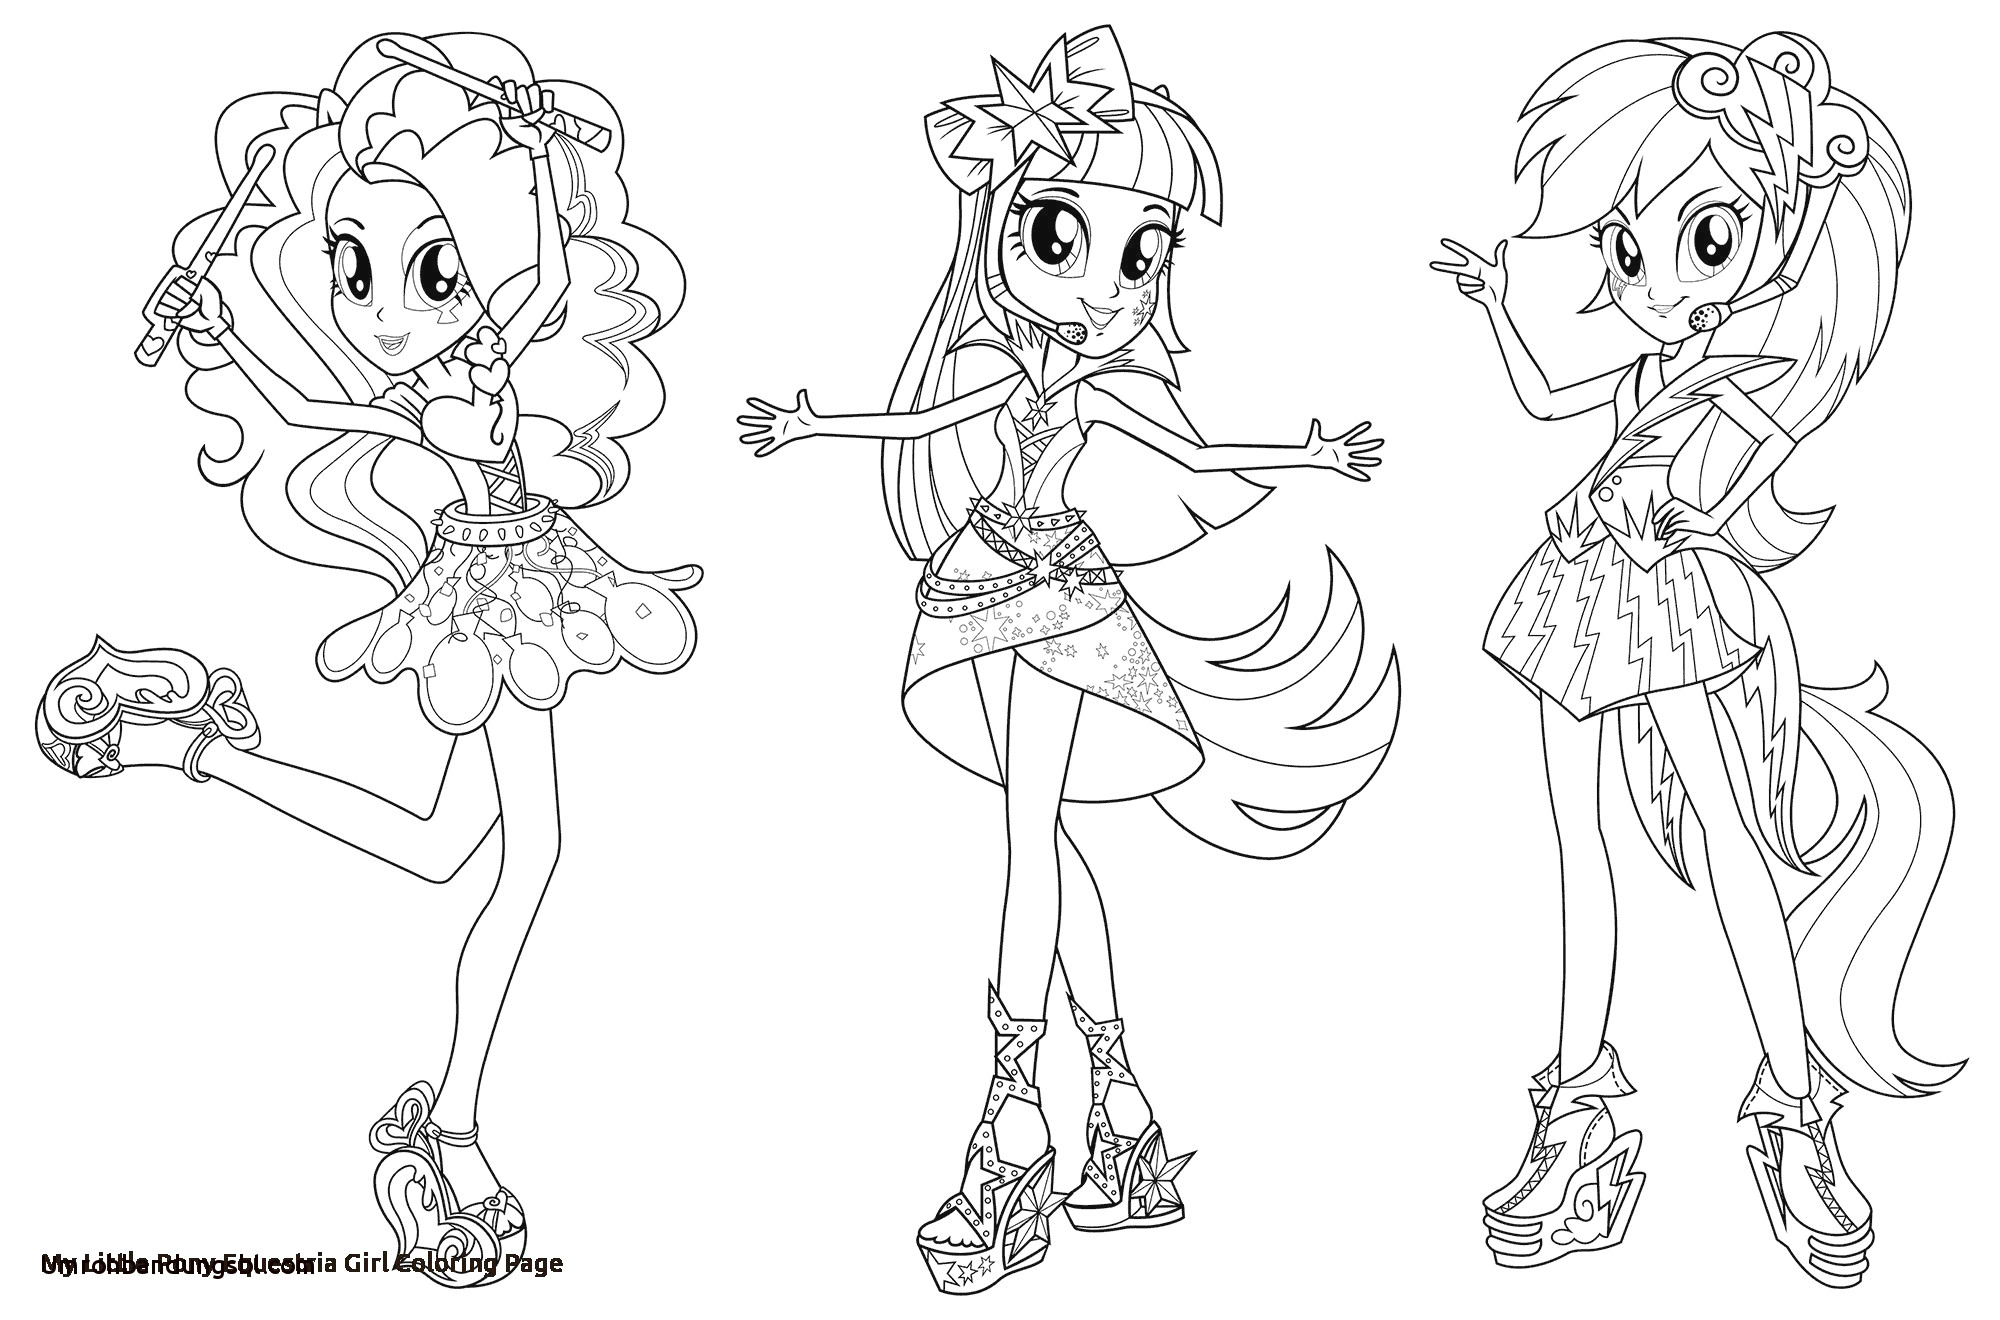 Mlp Resume - Pinkie Pie Coloring Pages to Print Lovely My Little Pony Coloring